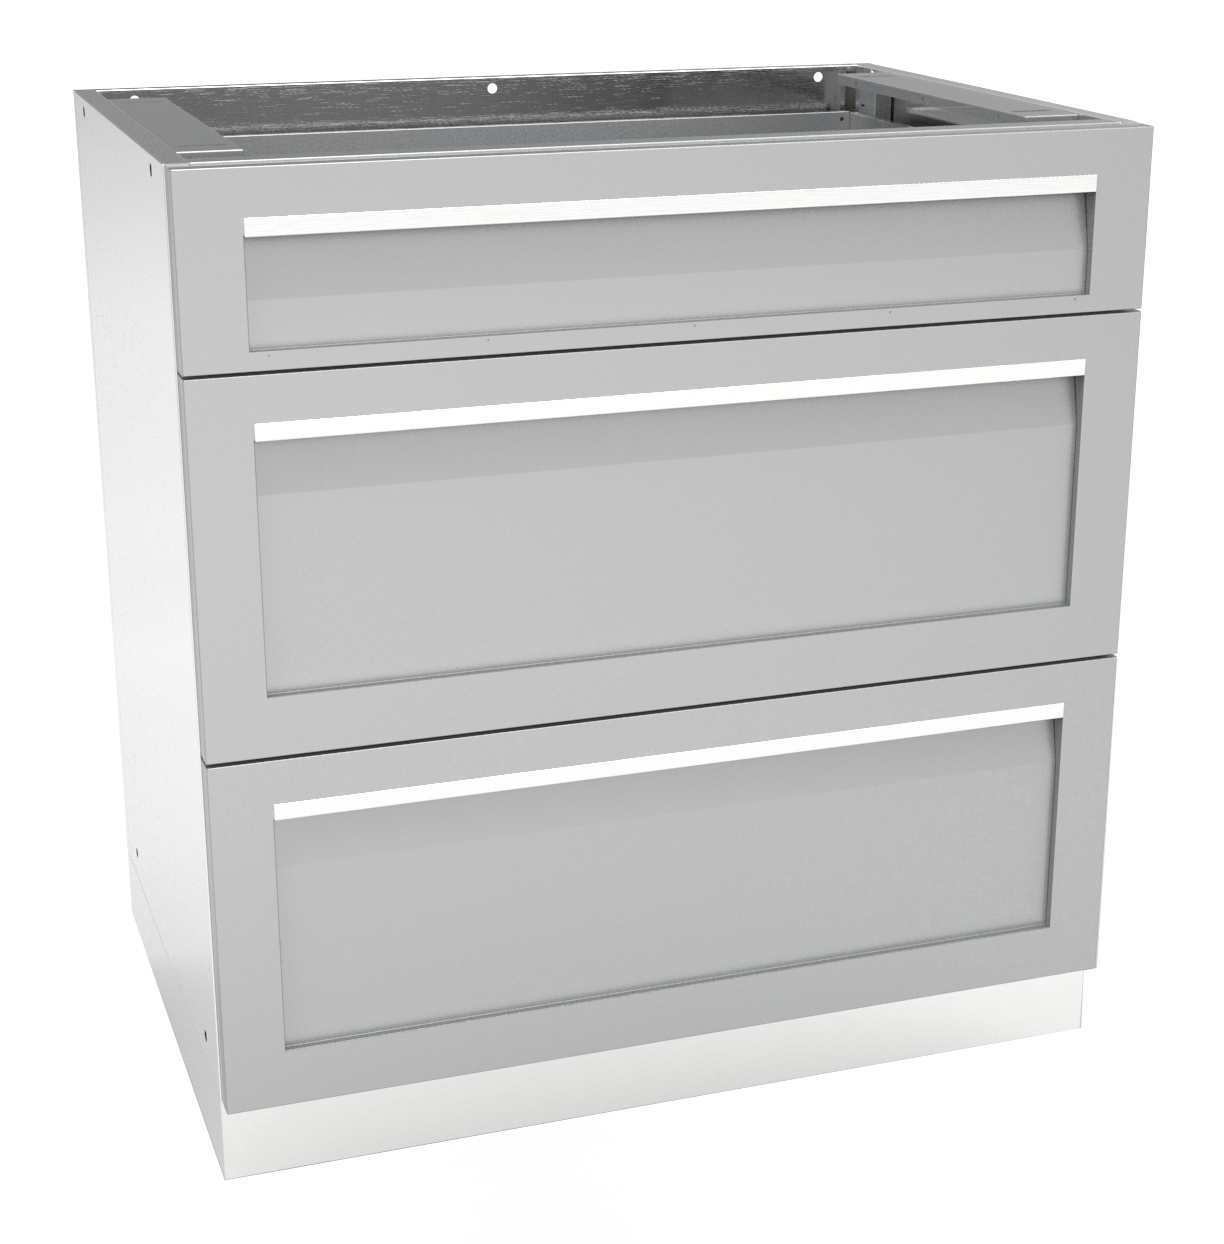 3 Drawer Outdoor Kitchen Cabinet G40003 4 Life Outdoor Inc